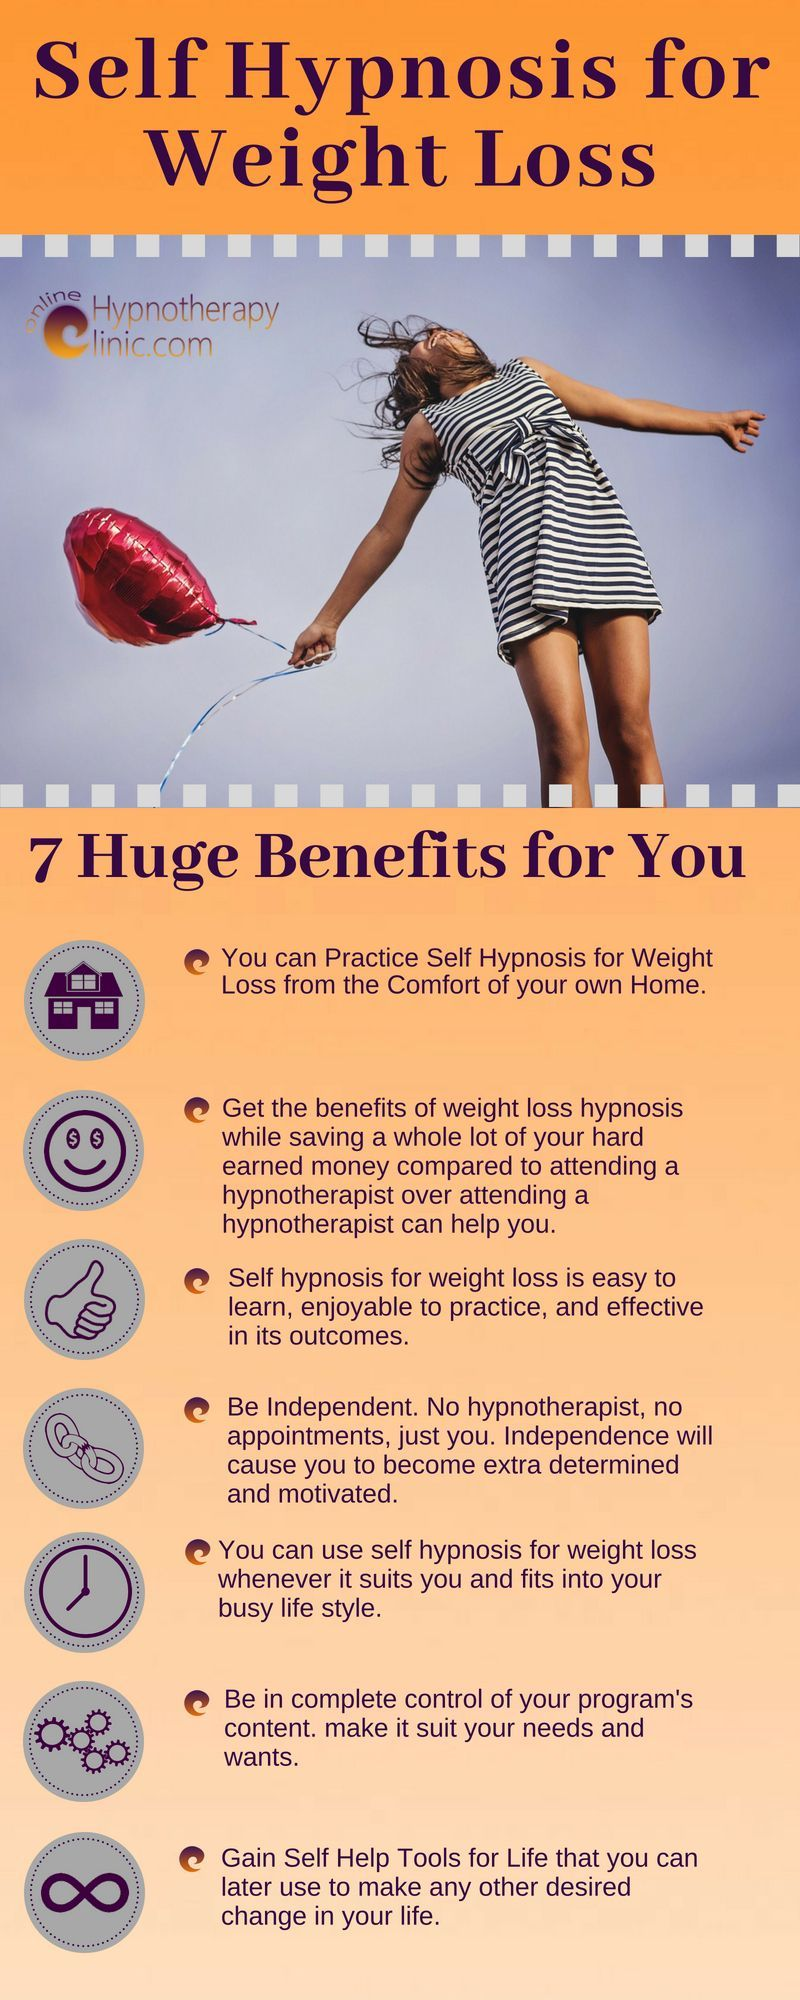 self hypnosis for weight loss